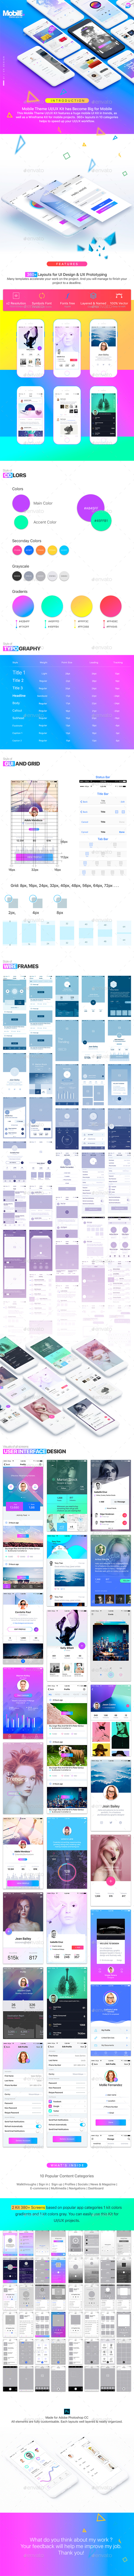 Organic - Mobile Login Screens (User Interfaces)